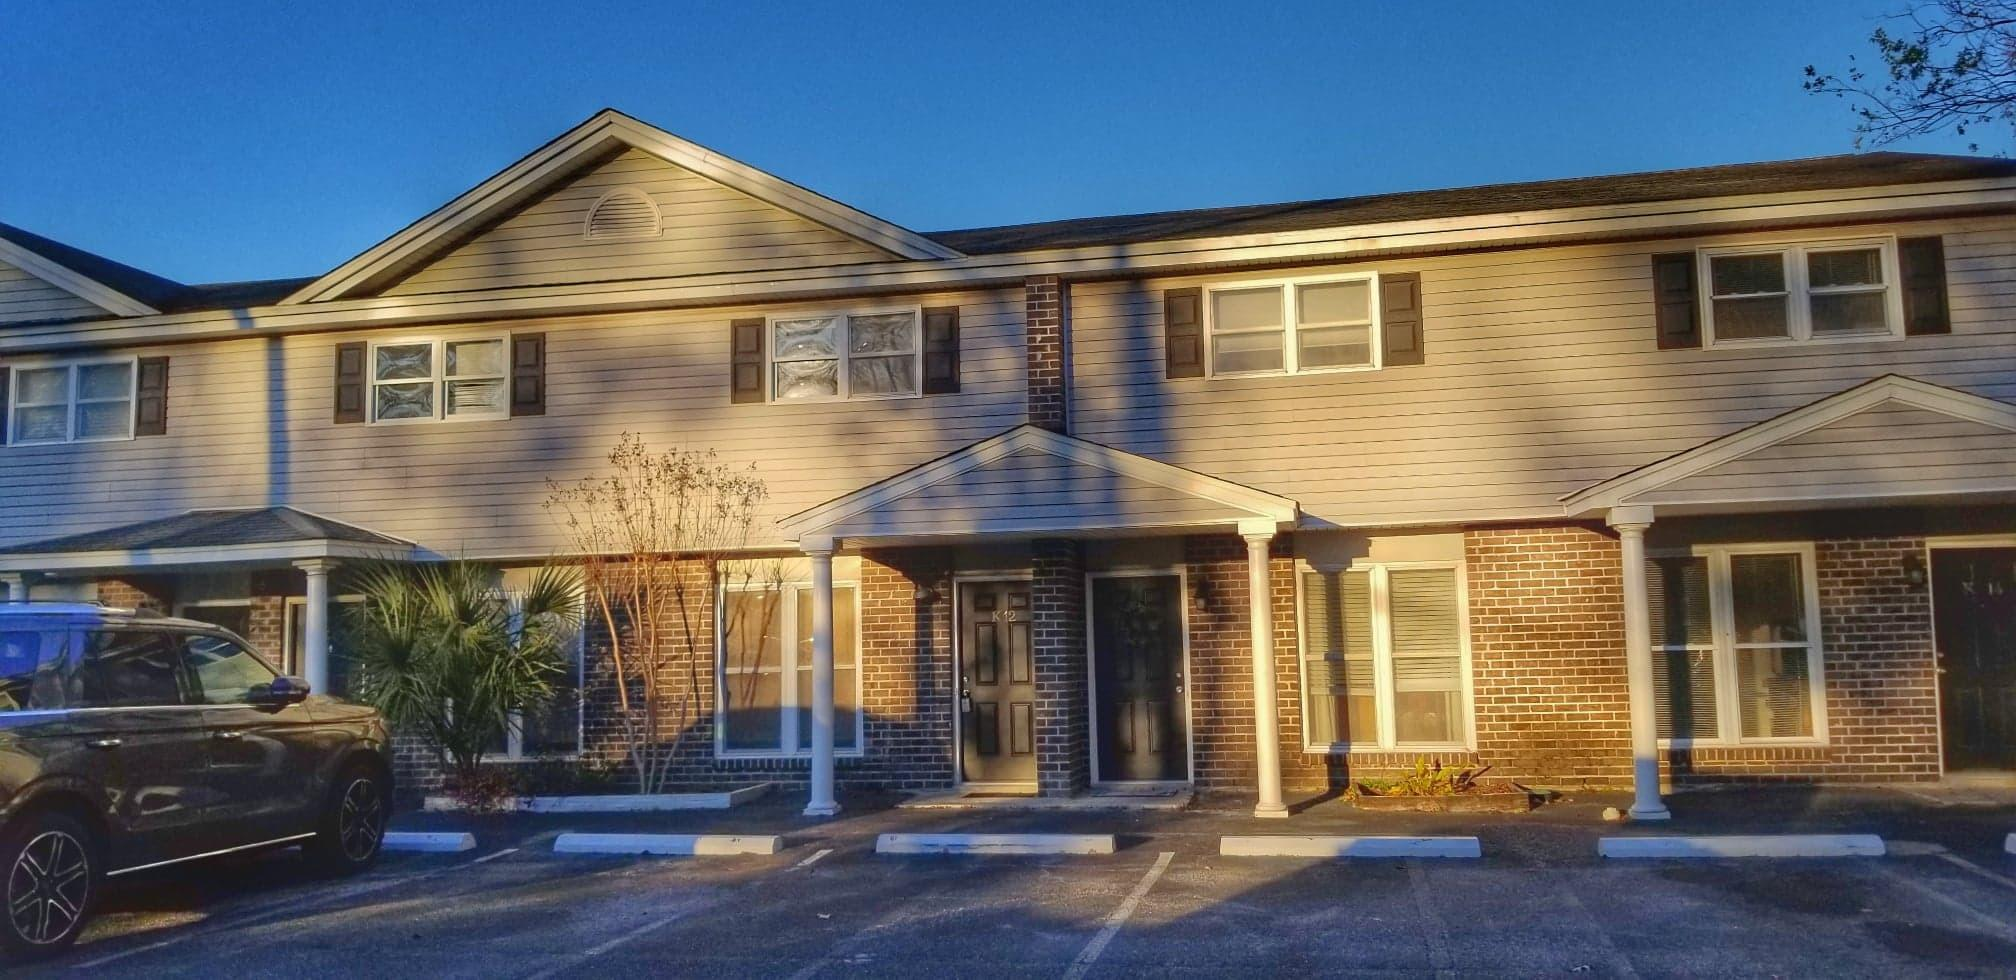 Mepkin Place Homes For Sale - 1735 Boone Hall, Charleston, SC - 0